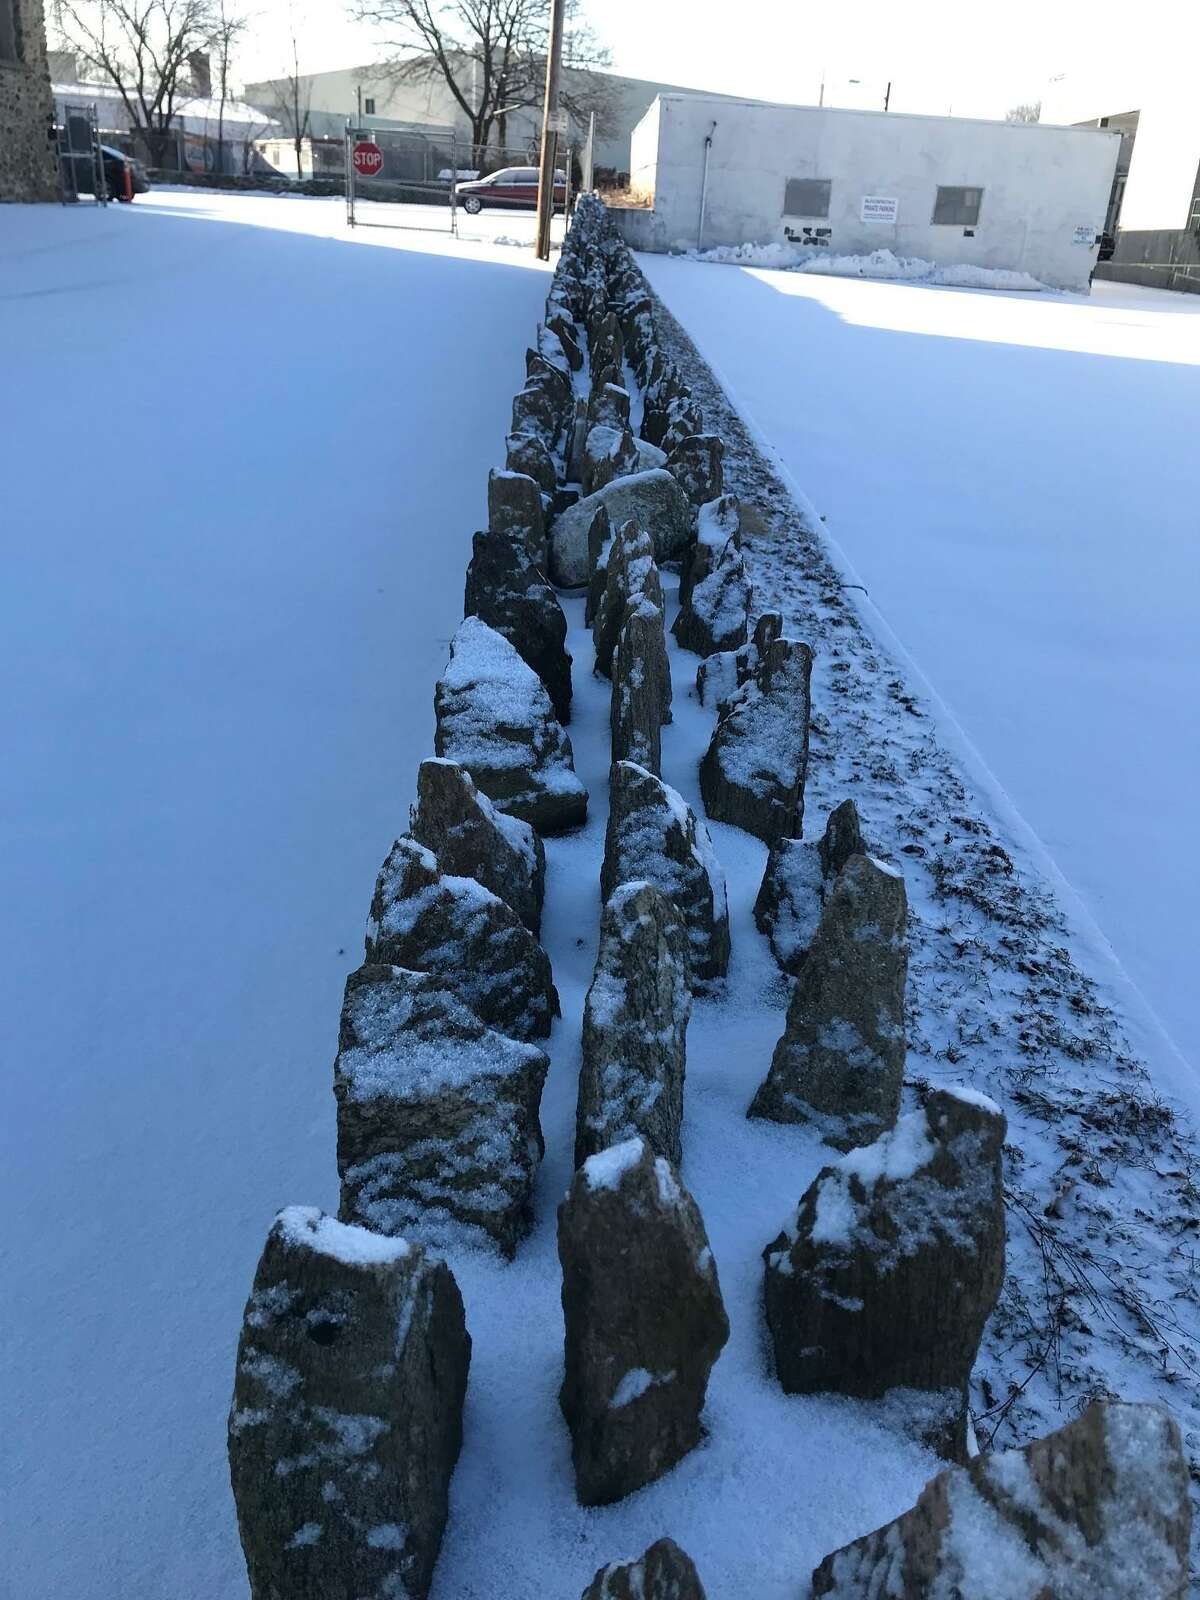 A stone wall dusted with snow at the Glenbrook Community Center in Stamford on Thursday, Feb. 28, 2019. About a half-inch of snow fell overnight.